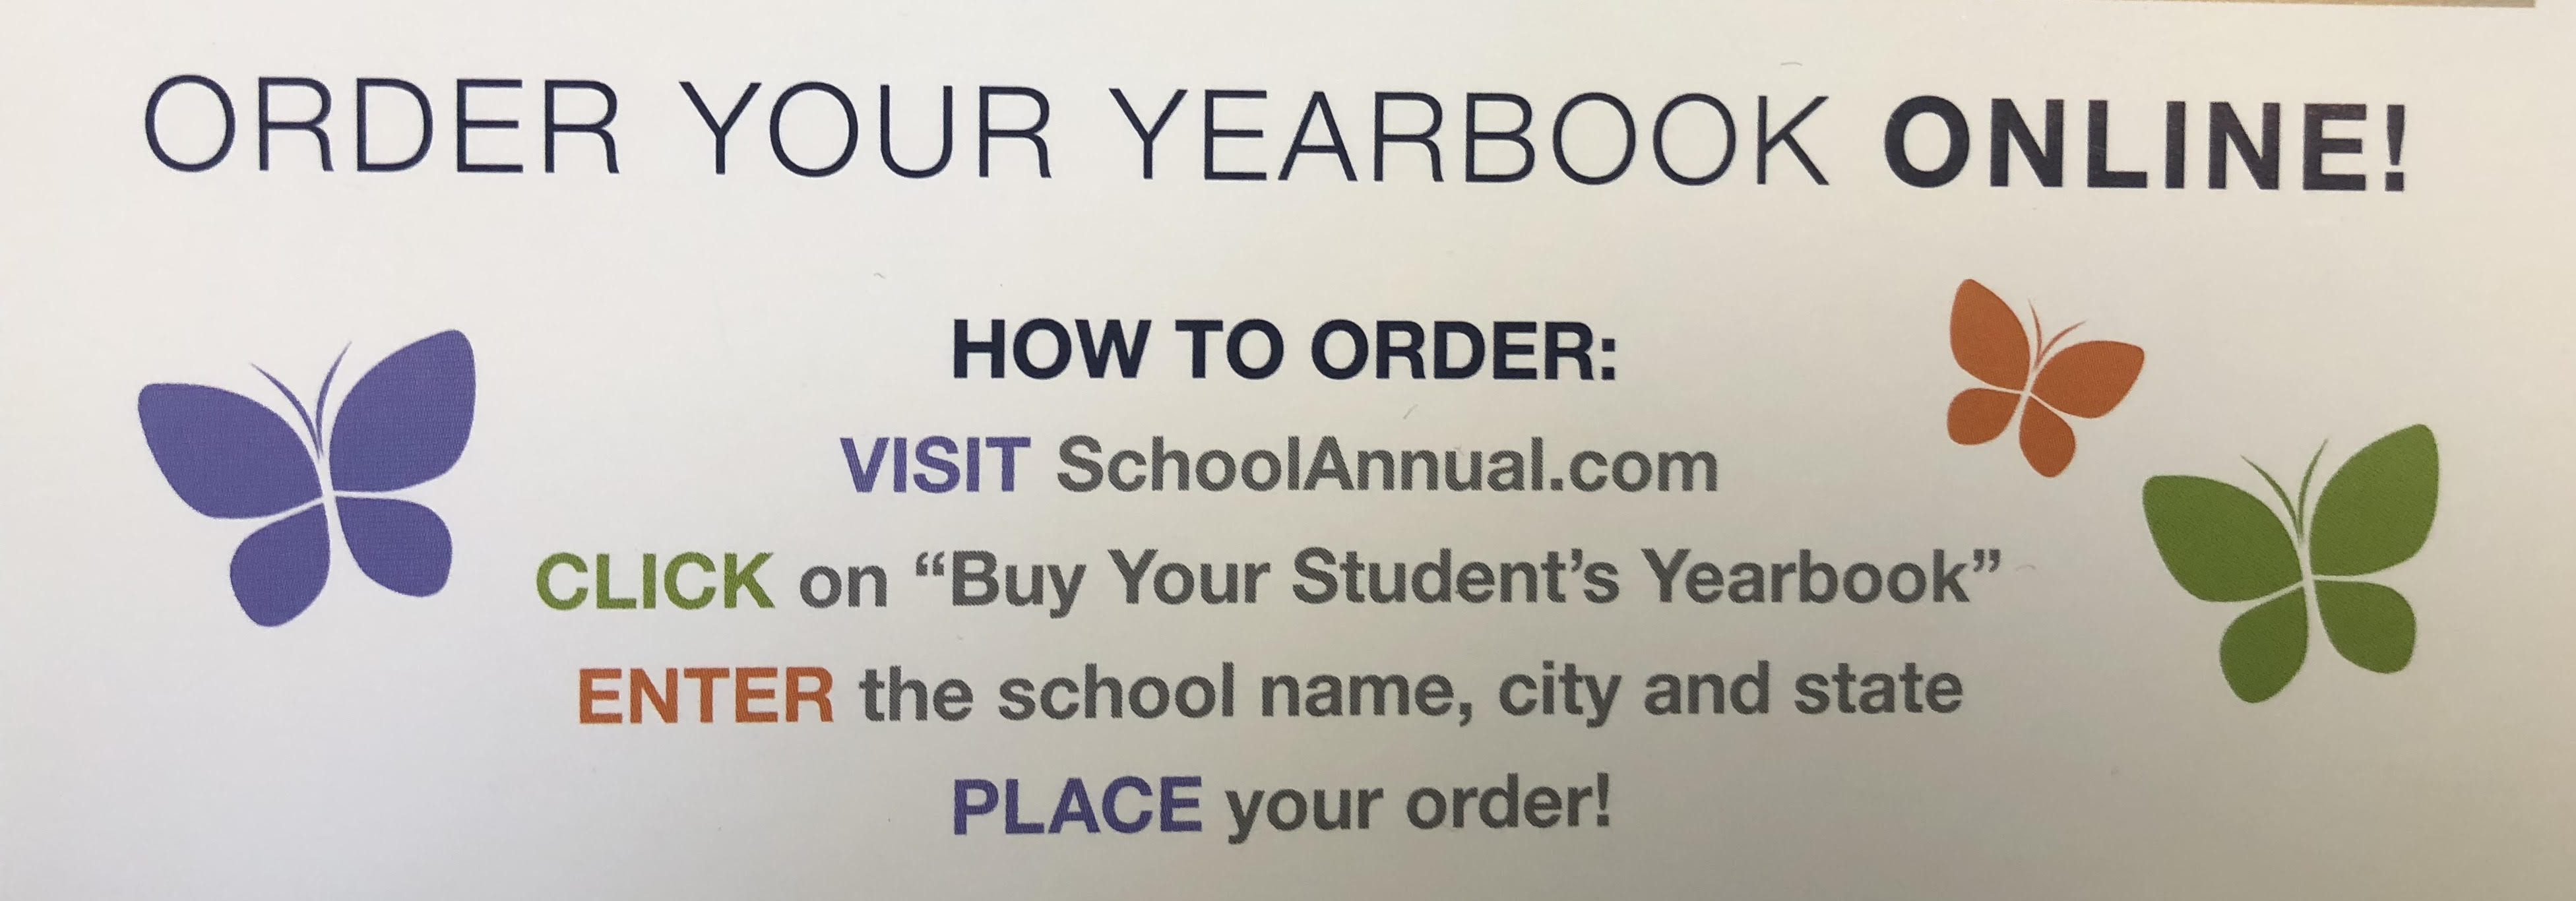 BASCS High School Yearbook is on Sale!